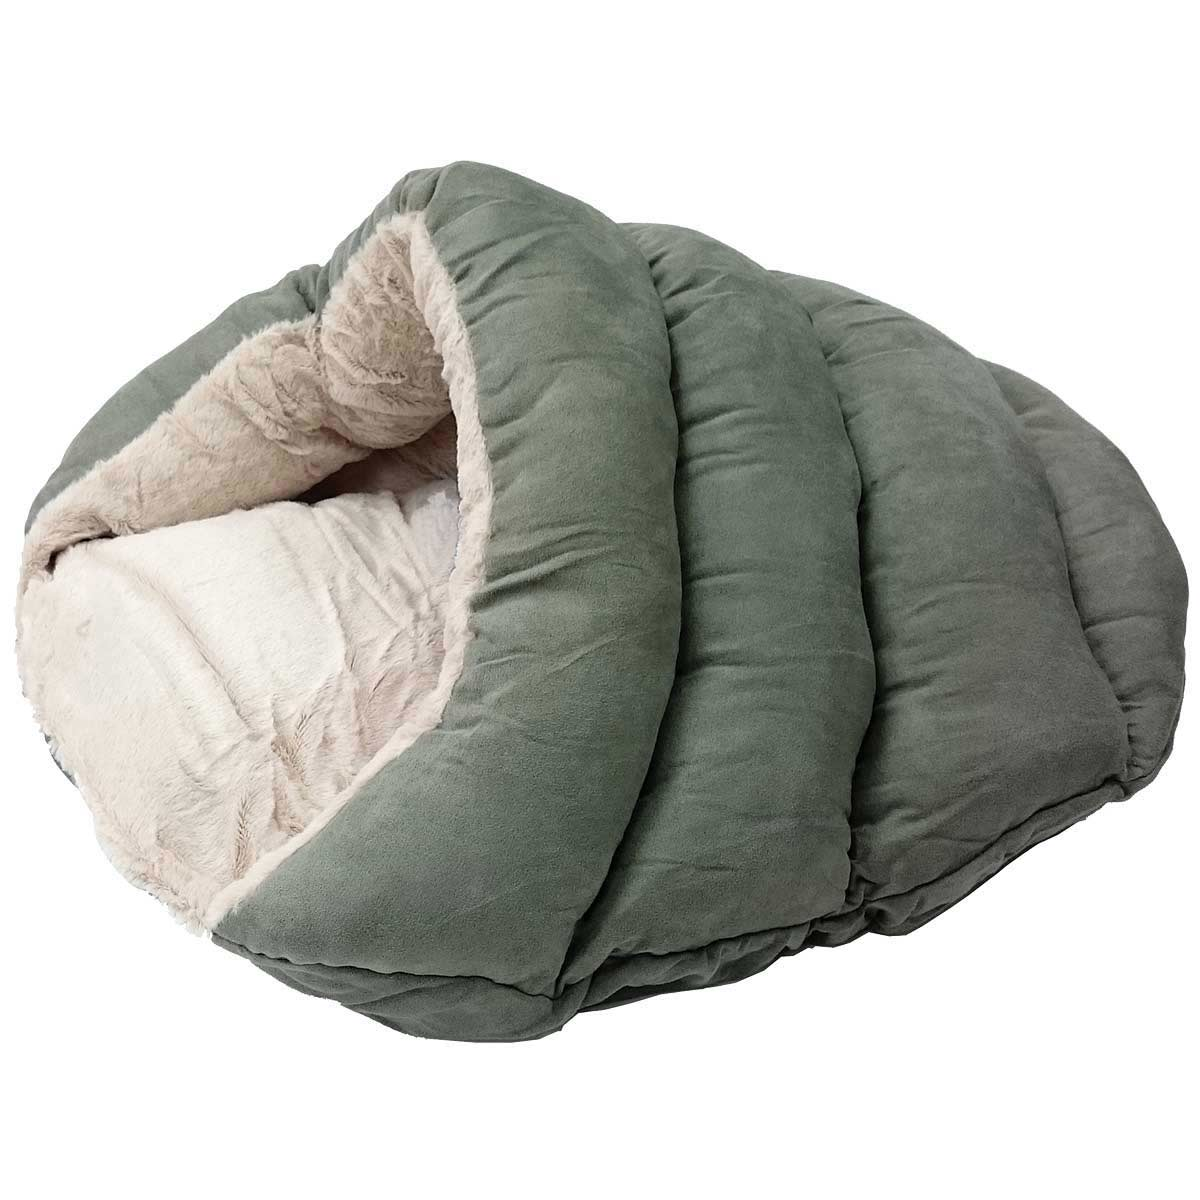 Sleep Zone Specialty Beds Cuddler Cave in Sage Green - 22 in by 17 in